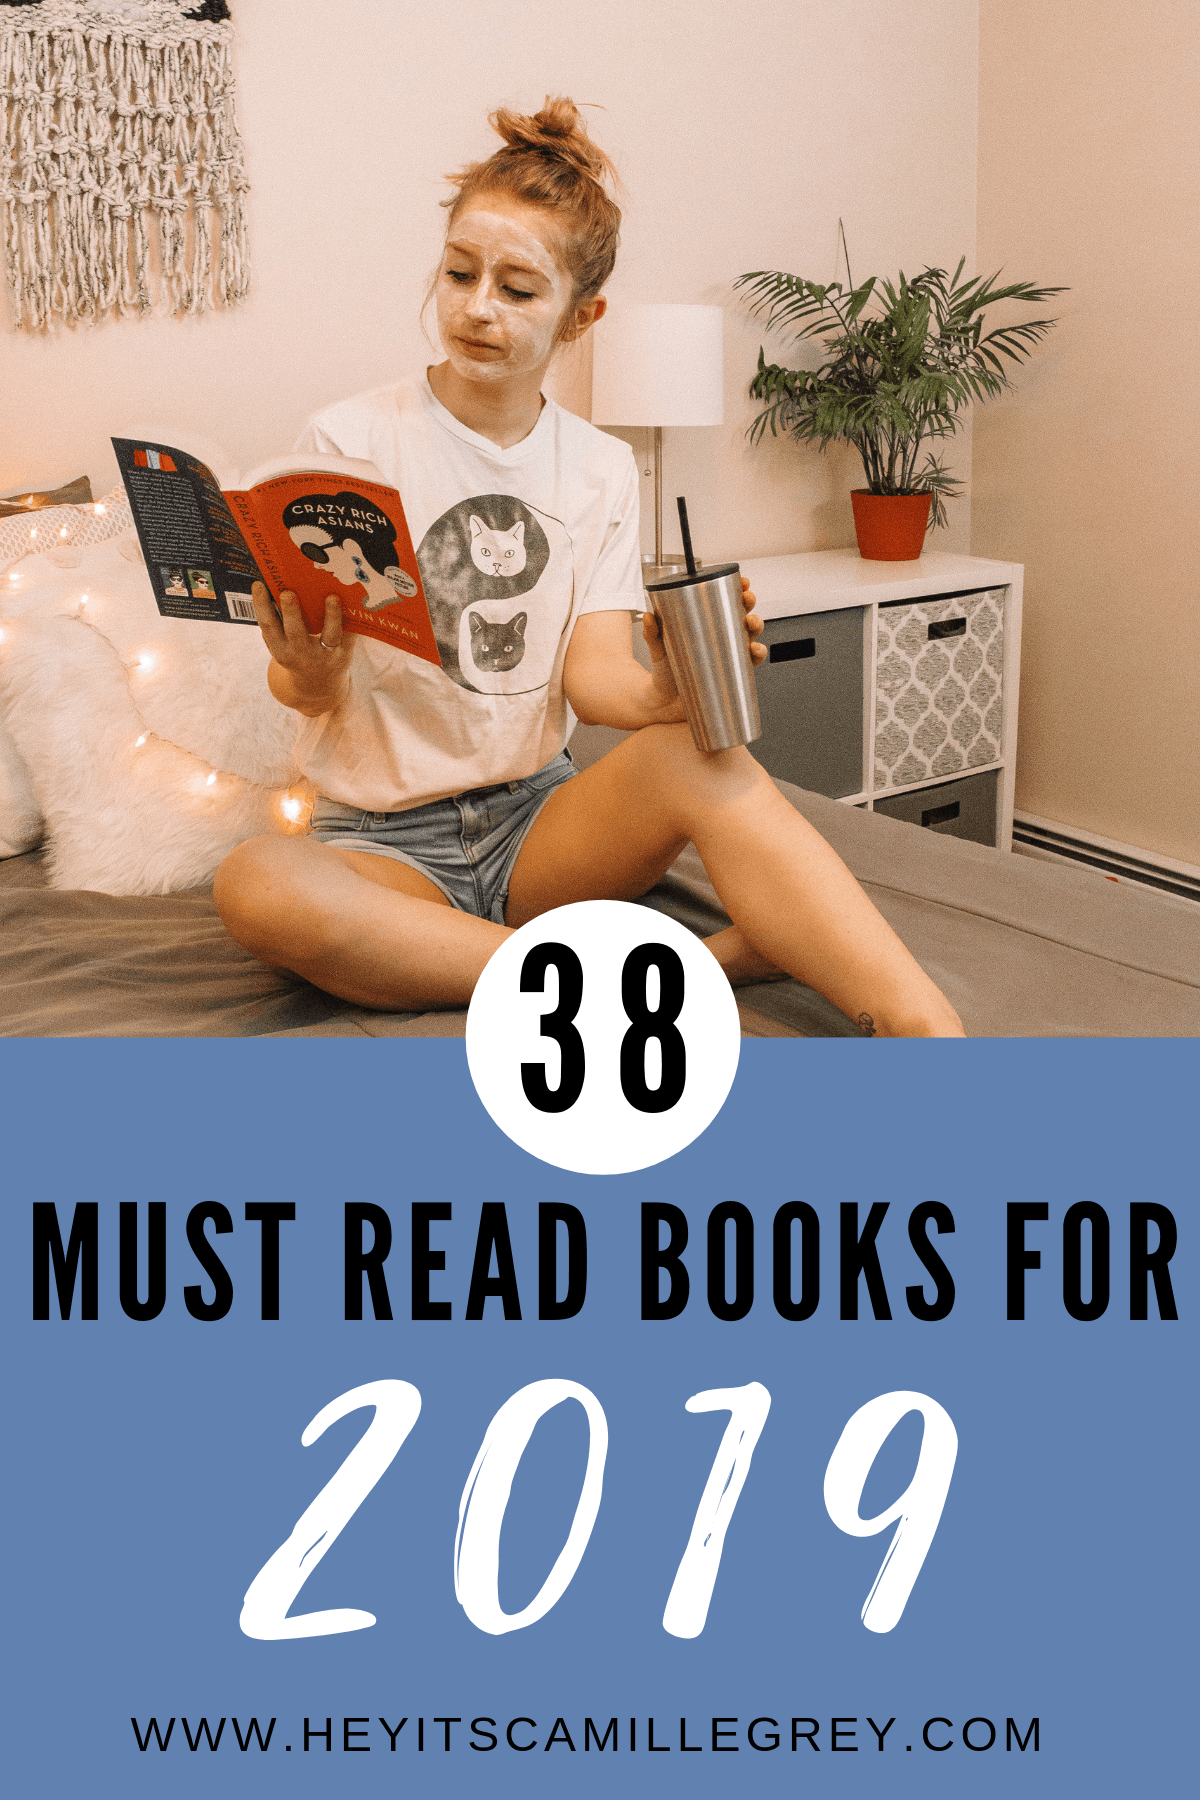 38 Must Read Books for 2019.   Hey Its Camille Grey #2019 #reading #mustread #books